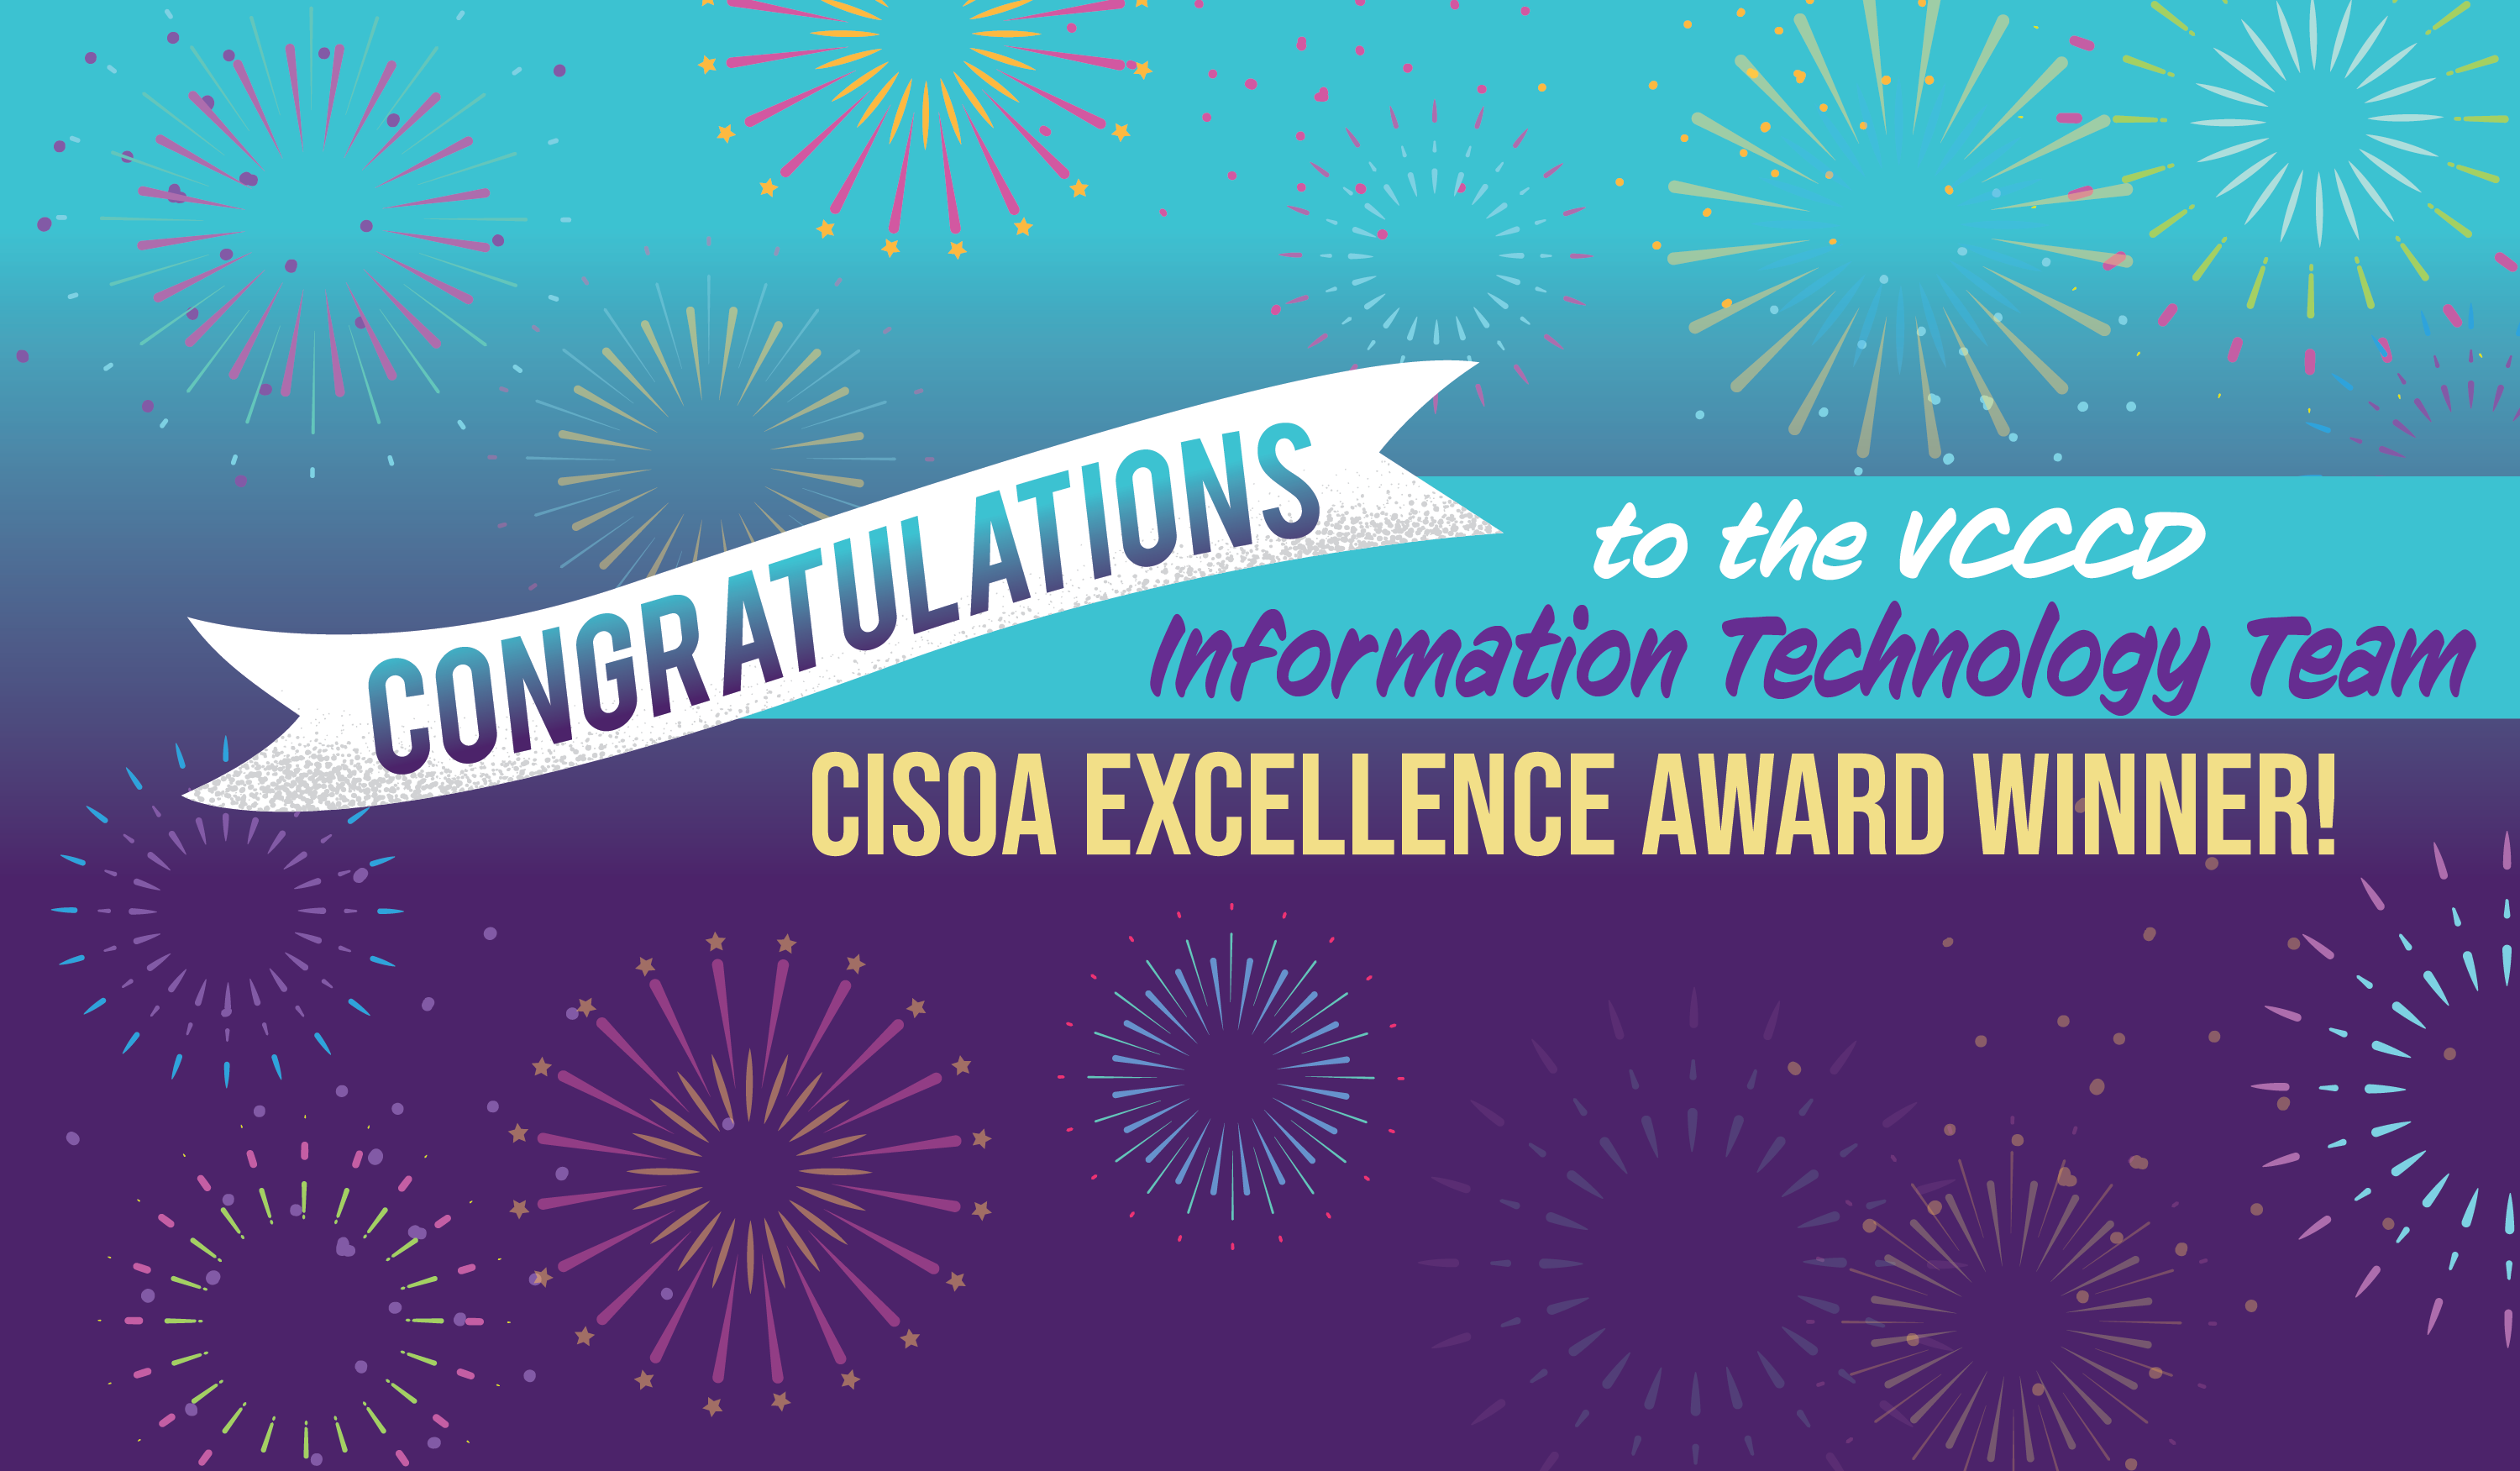 Congratulations to the VCCCD Information Technology Team | CISOA Excellence Award Winner!